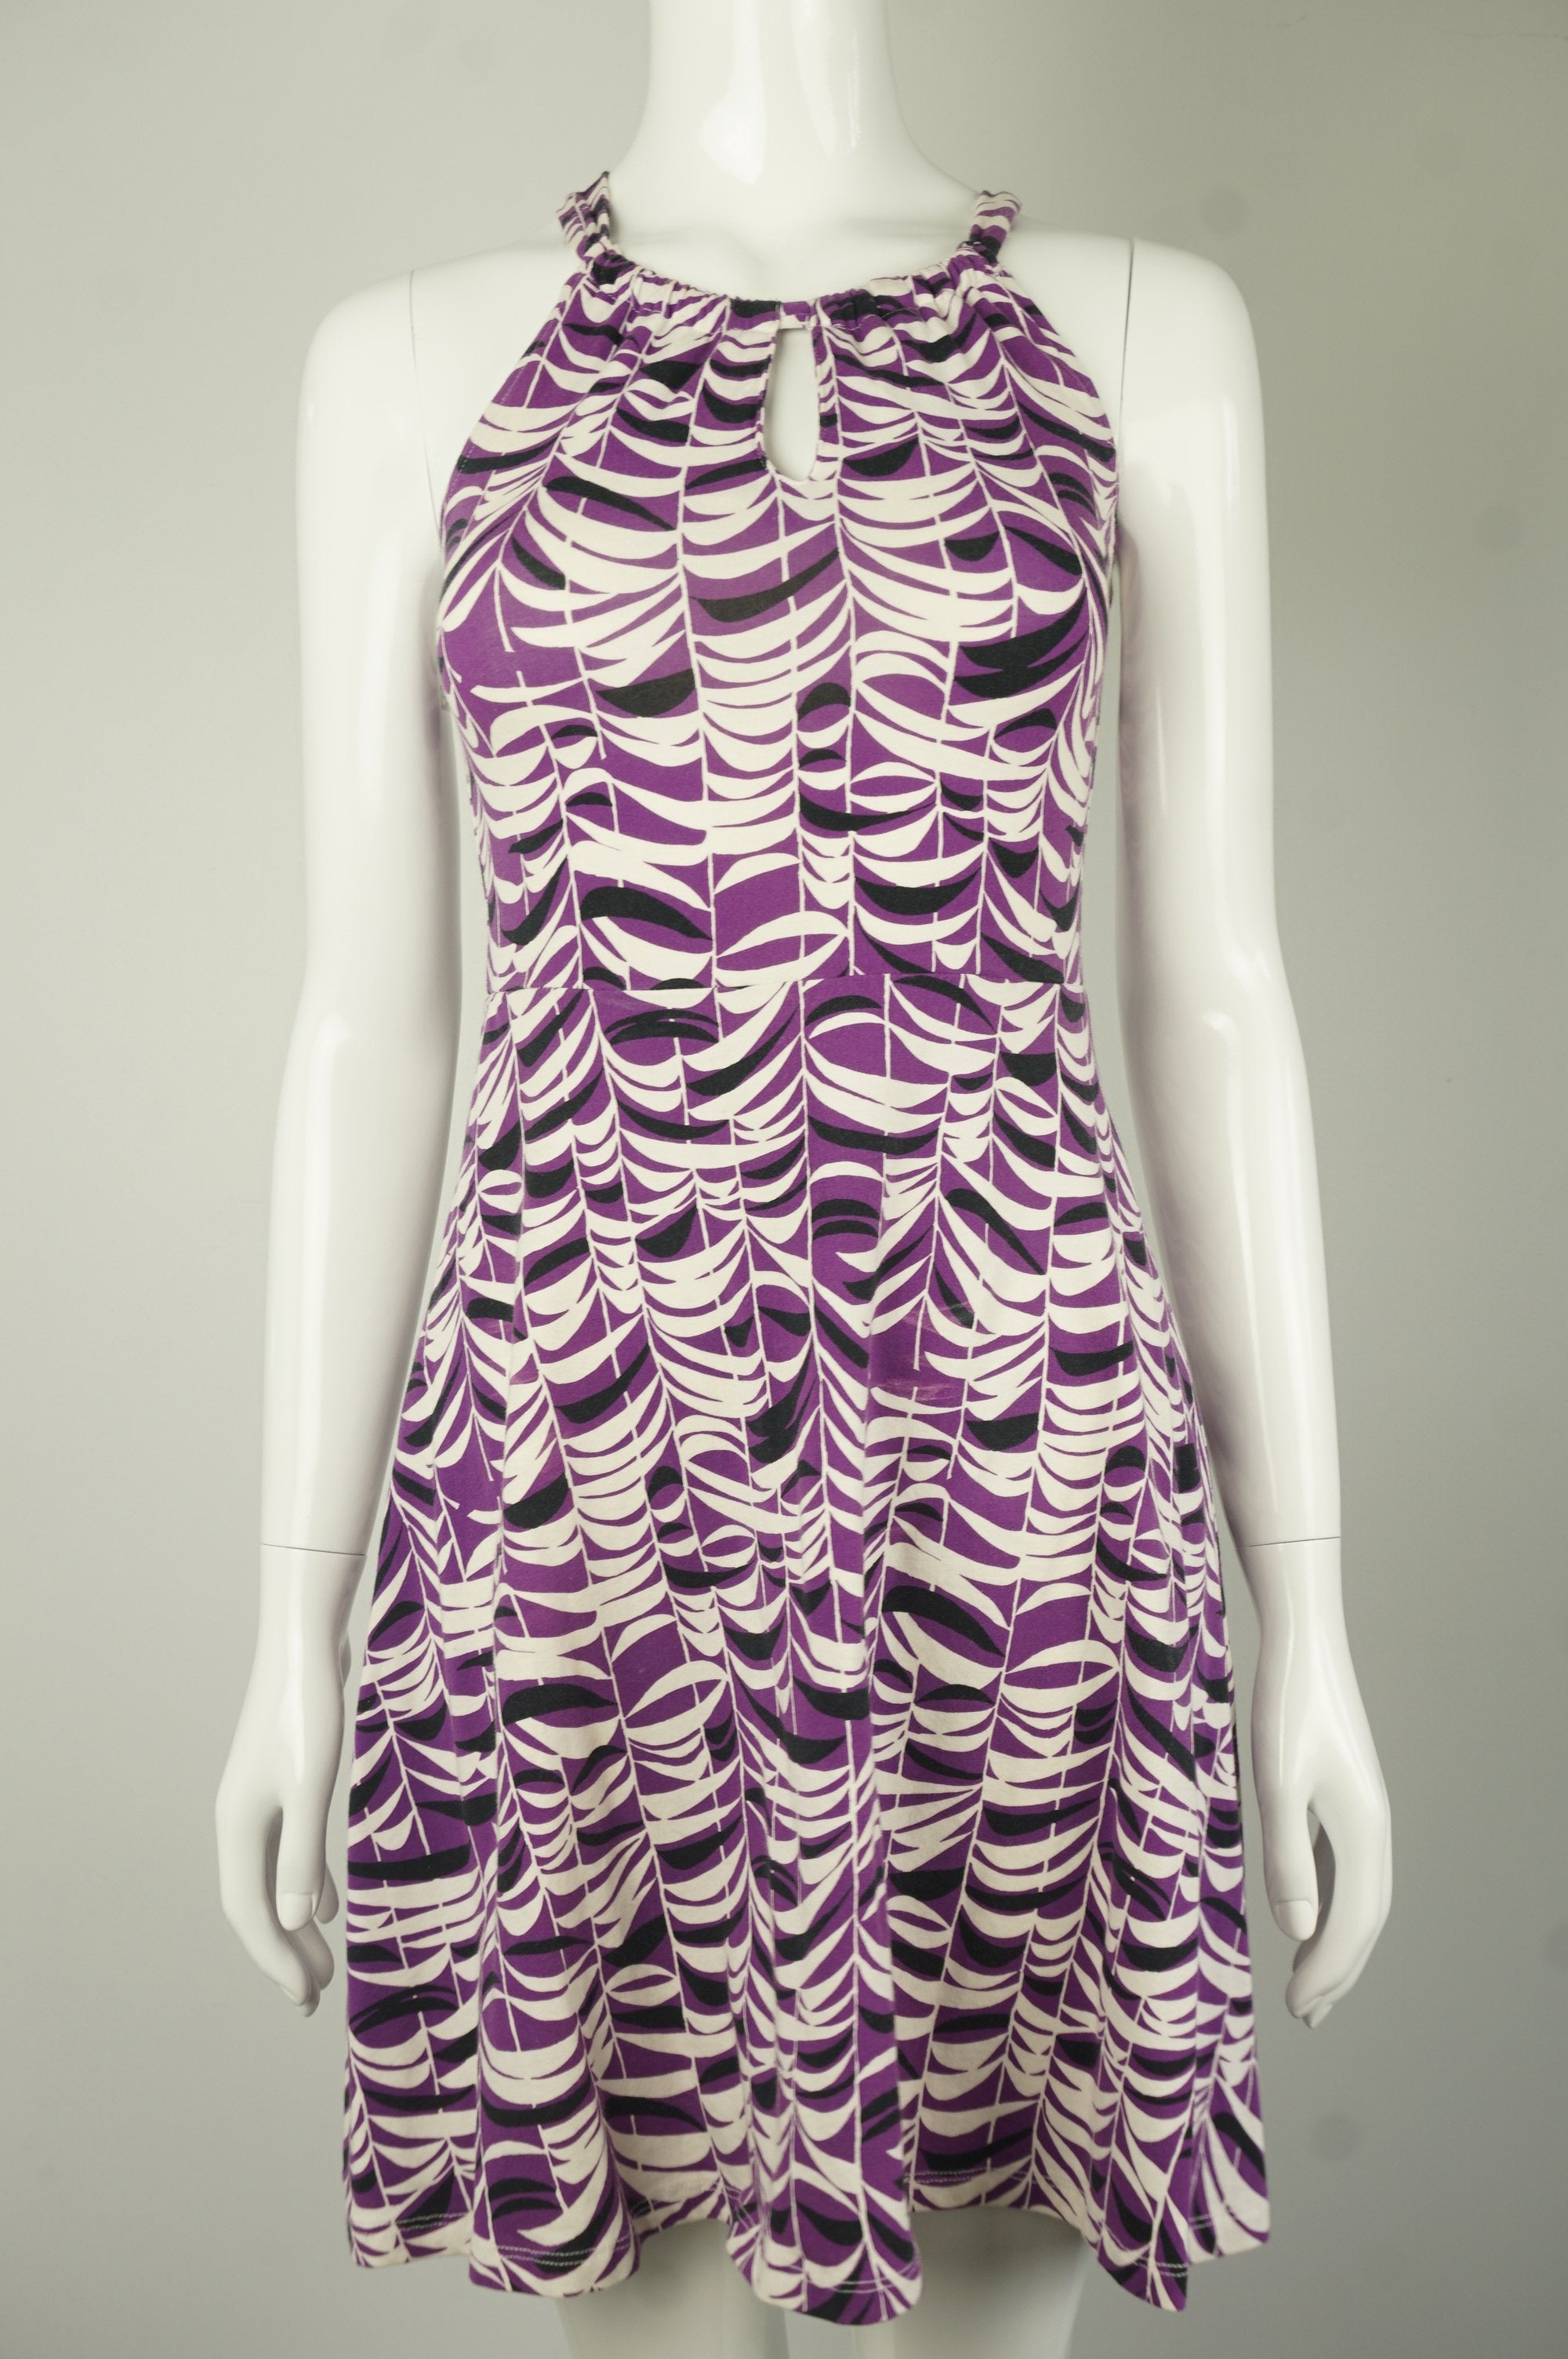 Forever 21 Cute Purple Zebra Print Flared Dress with Crossed Strap Back, Comfortable, stretchy, yet elegant, this flared dress with crossed strap will help you radiate in a special feminine charm. , Purple, White, 2 way stretch fabric, women's Dresses & Rompers, women's Purple, White Dresses & Rompers, Forever 21 women's Dresses & Rompers, Purple leaf patterns mini dress, dresses for outdoor events, party dresses, stretchy and body-cut flared dress